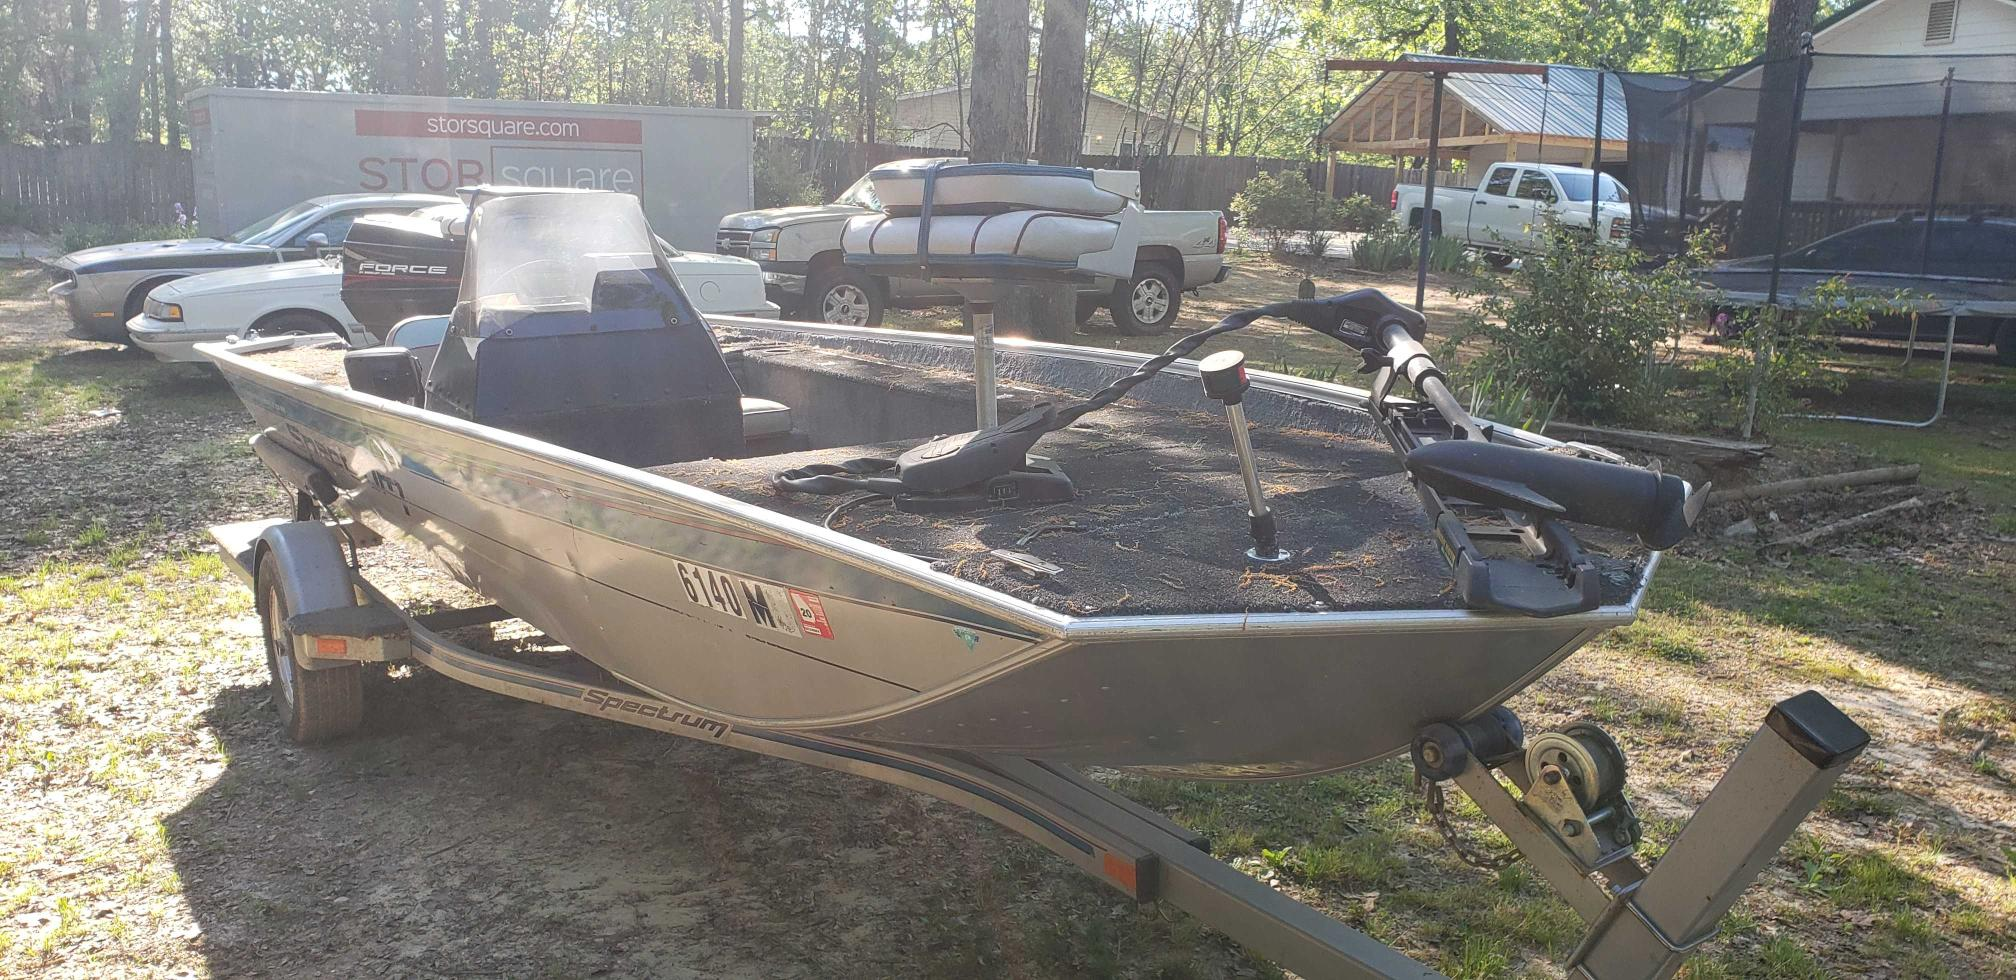 Spec salvage cars for sale: 1994 Spec Boat